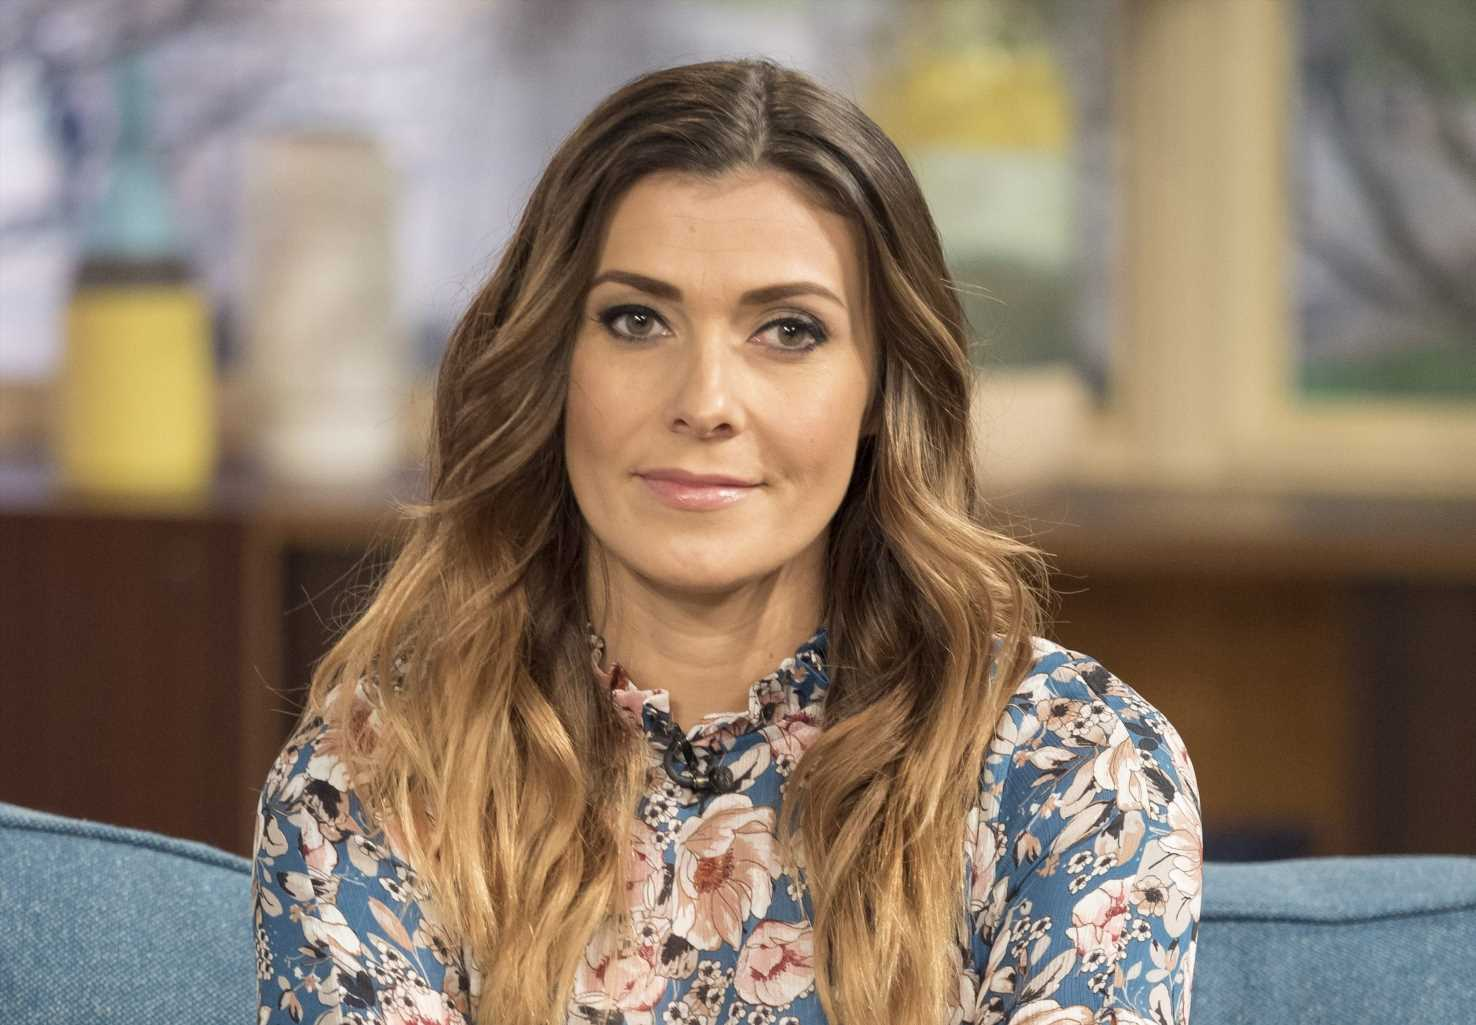 Coronation Street's Kym Marsh is recovering after undergoing a mystery operation